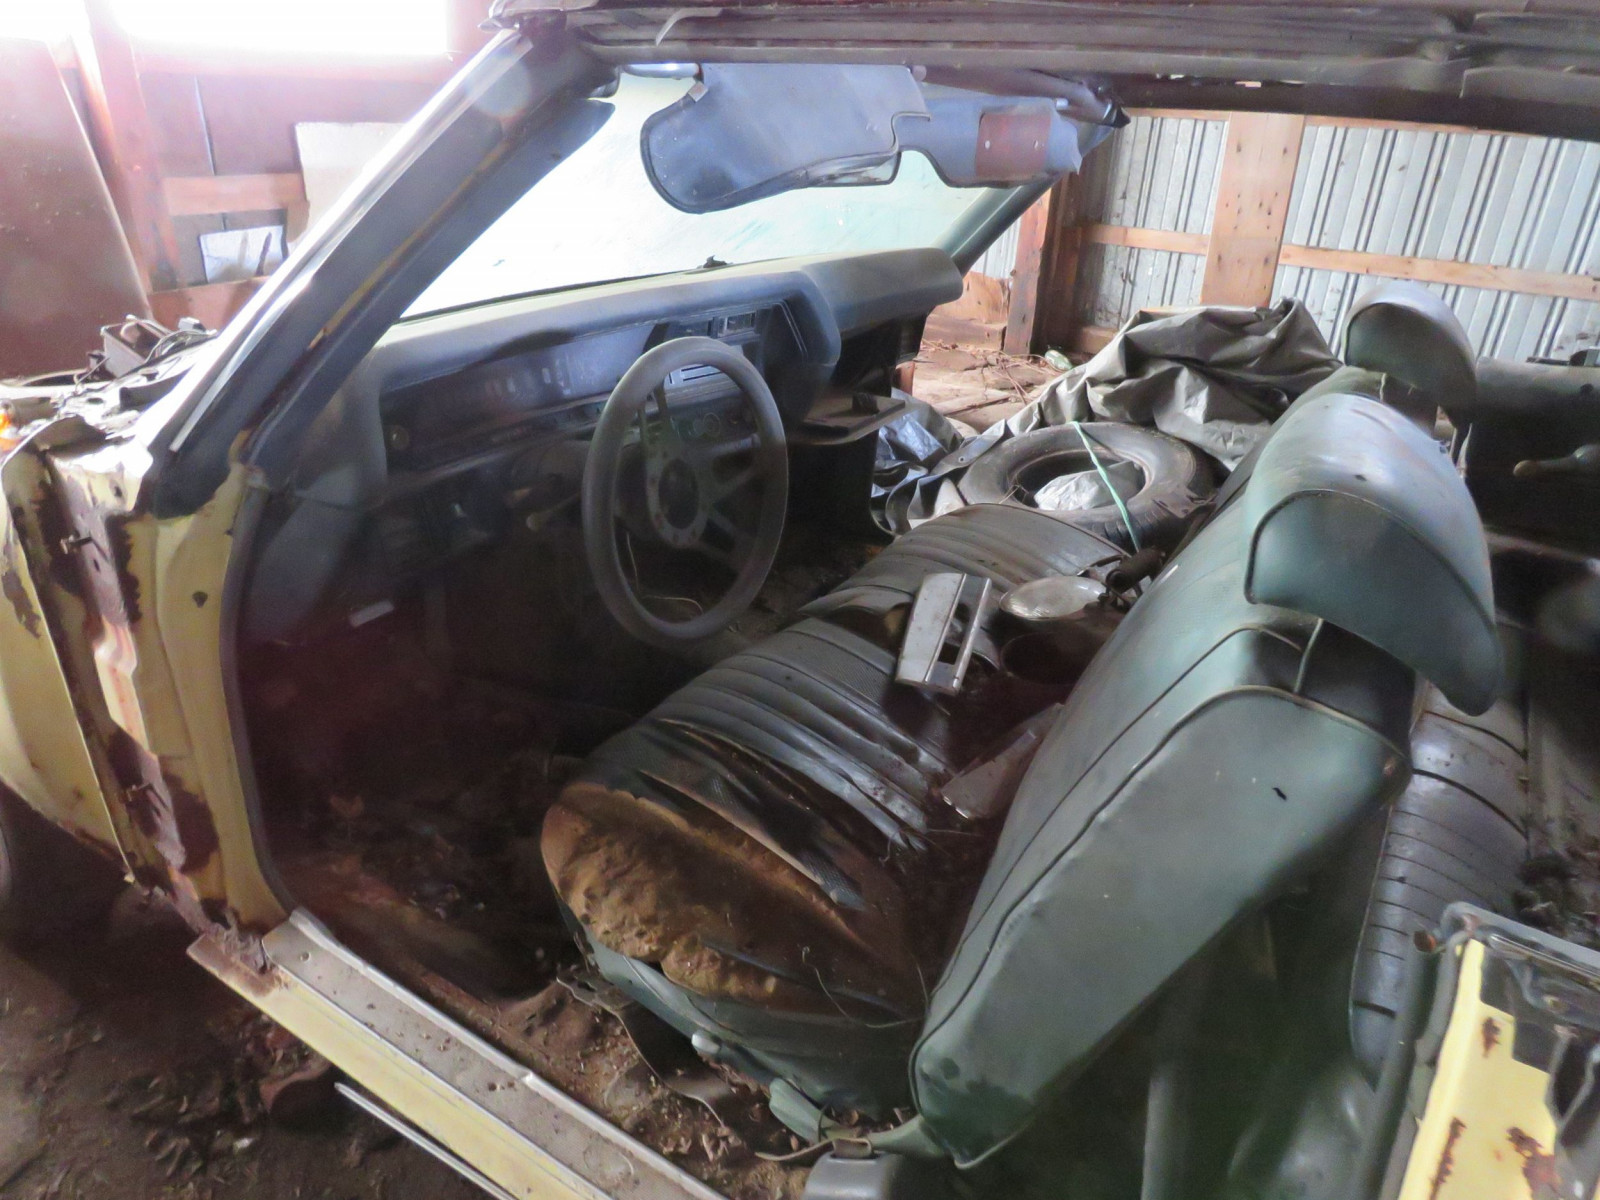 1972 Chevrolet Chevelle Convertible for Project or Parts - Image 3